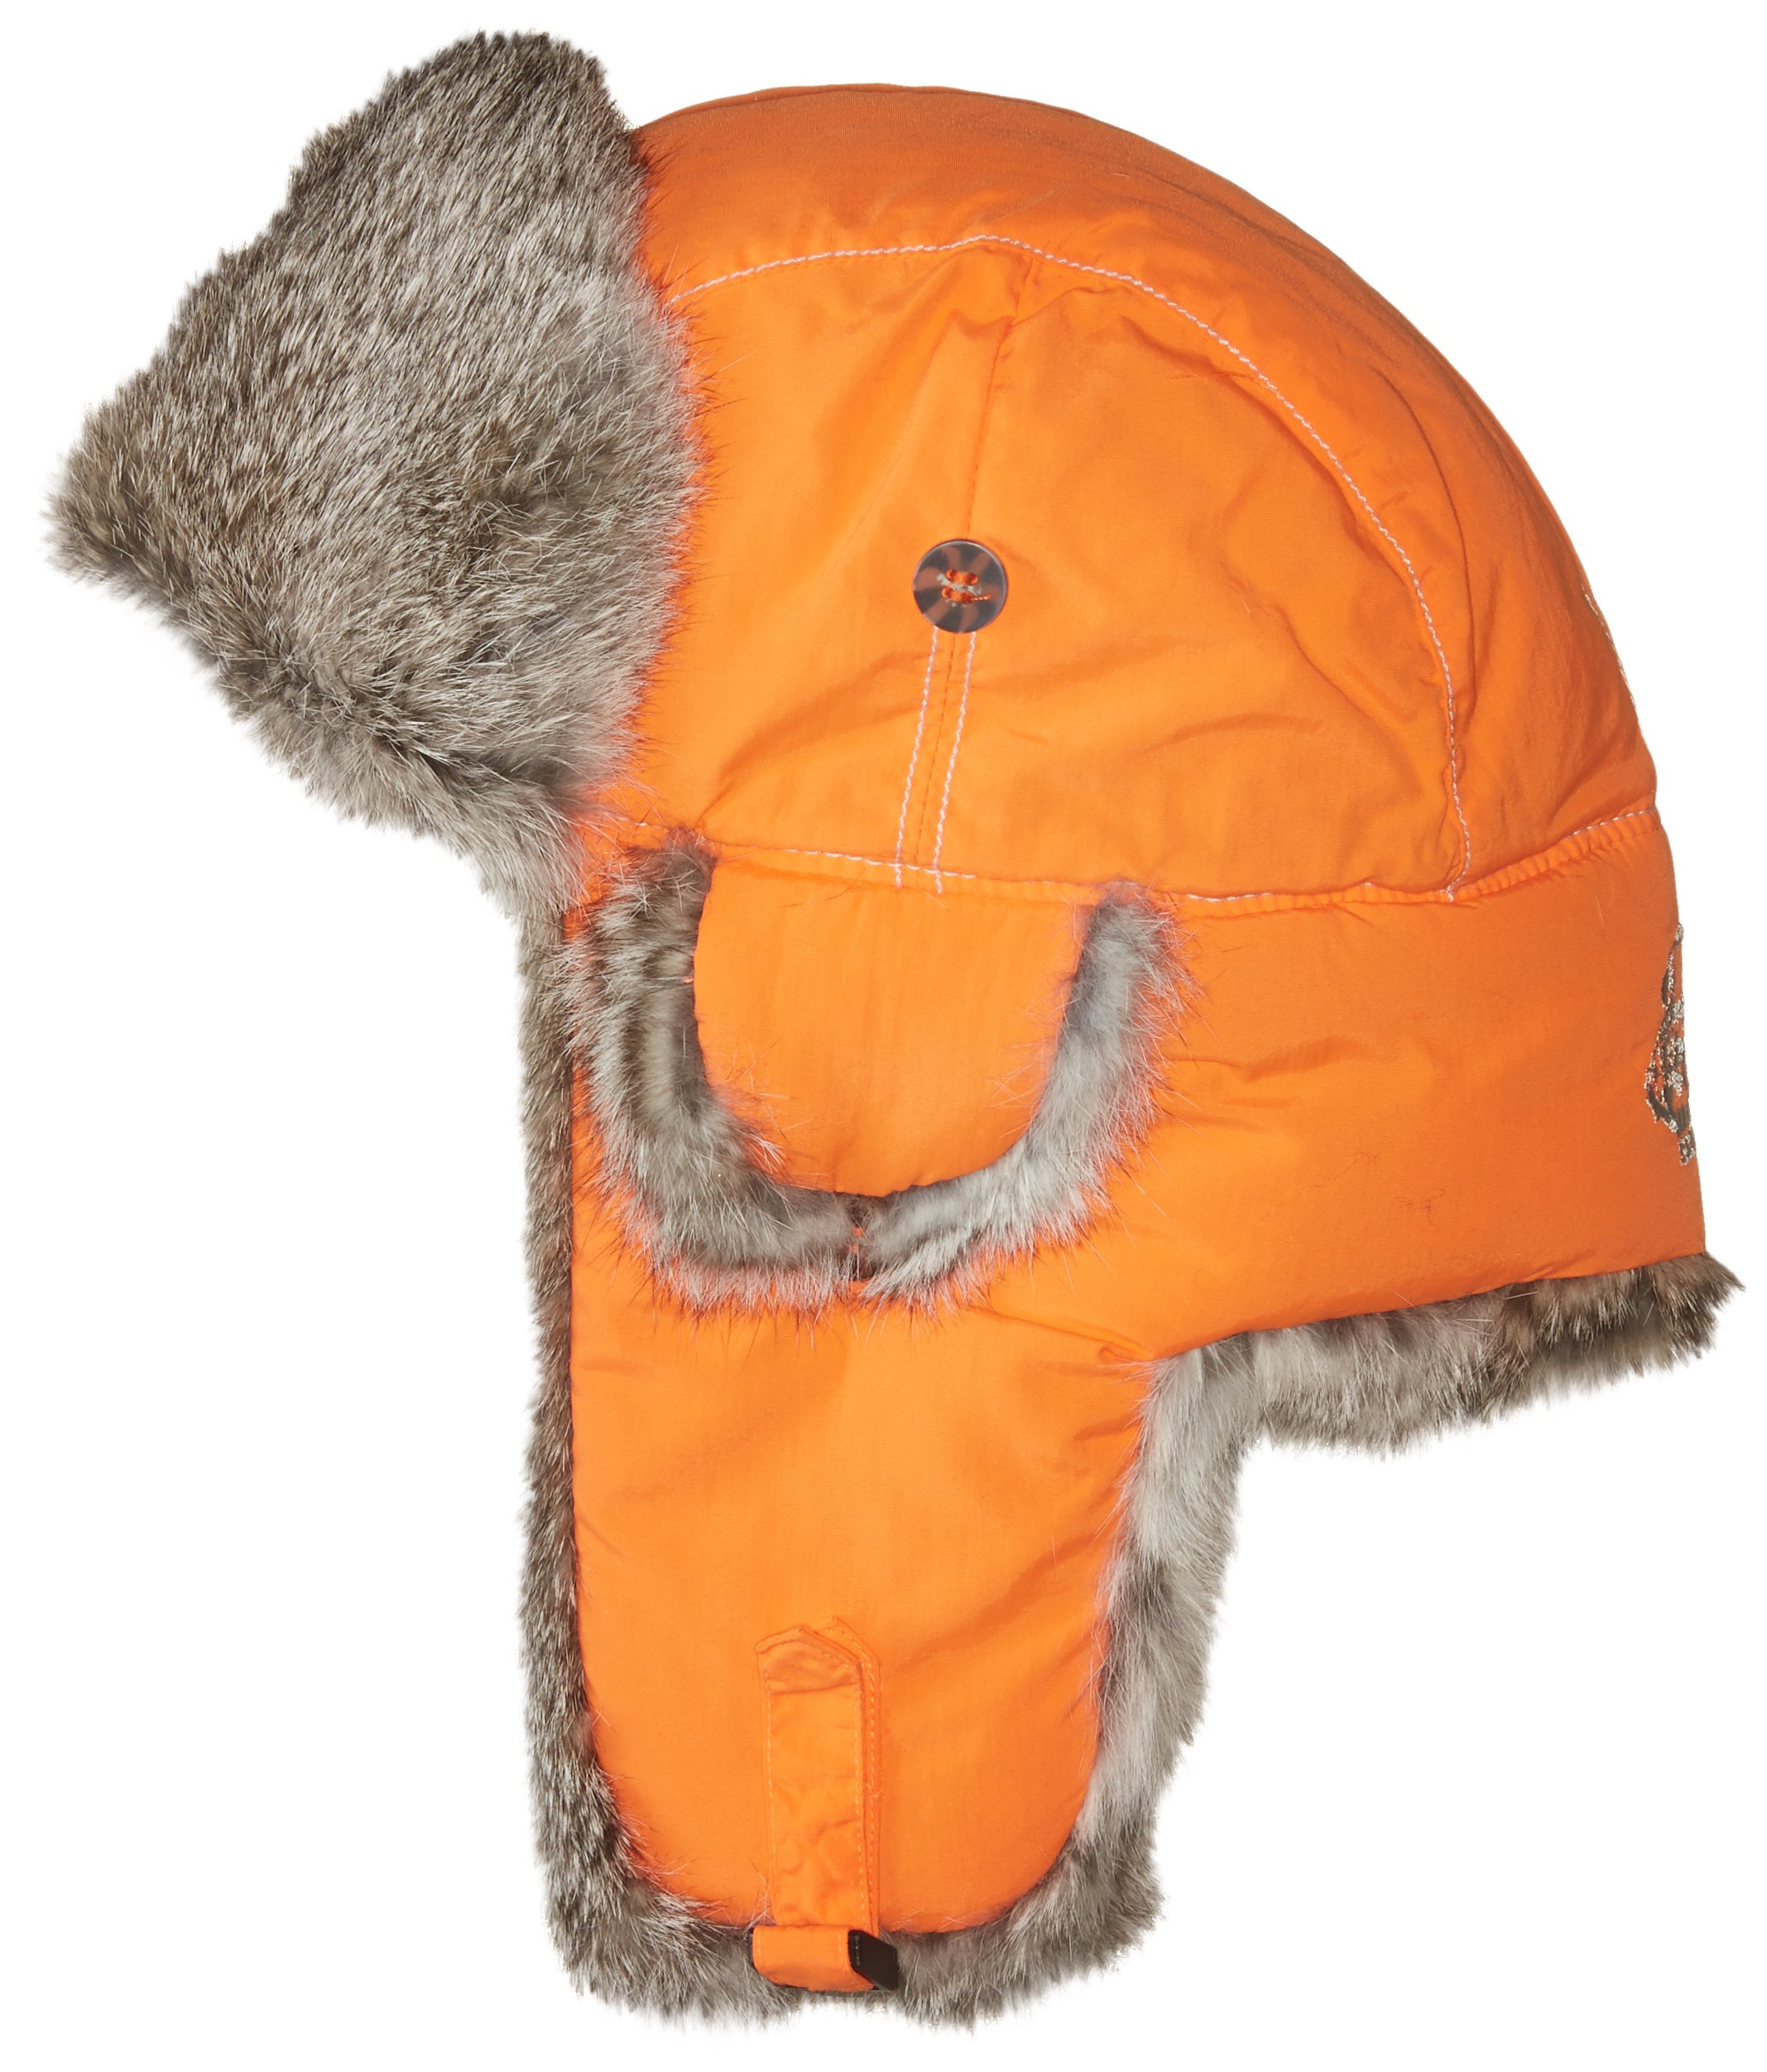 Mad Bomber Blaze Pilot Bomber Hat Real Rabbit Fur Trapper Hunting Cap, Small